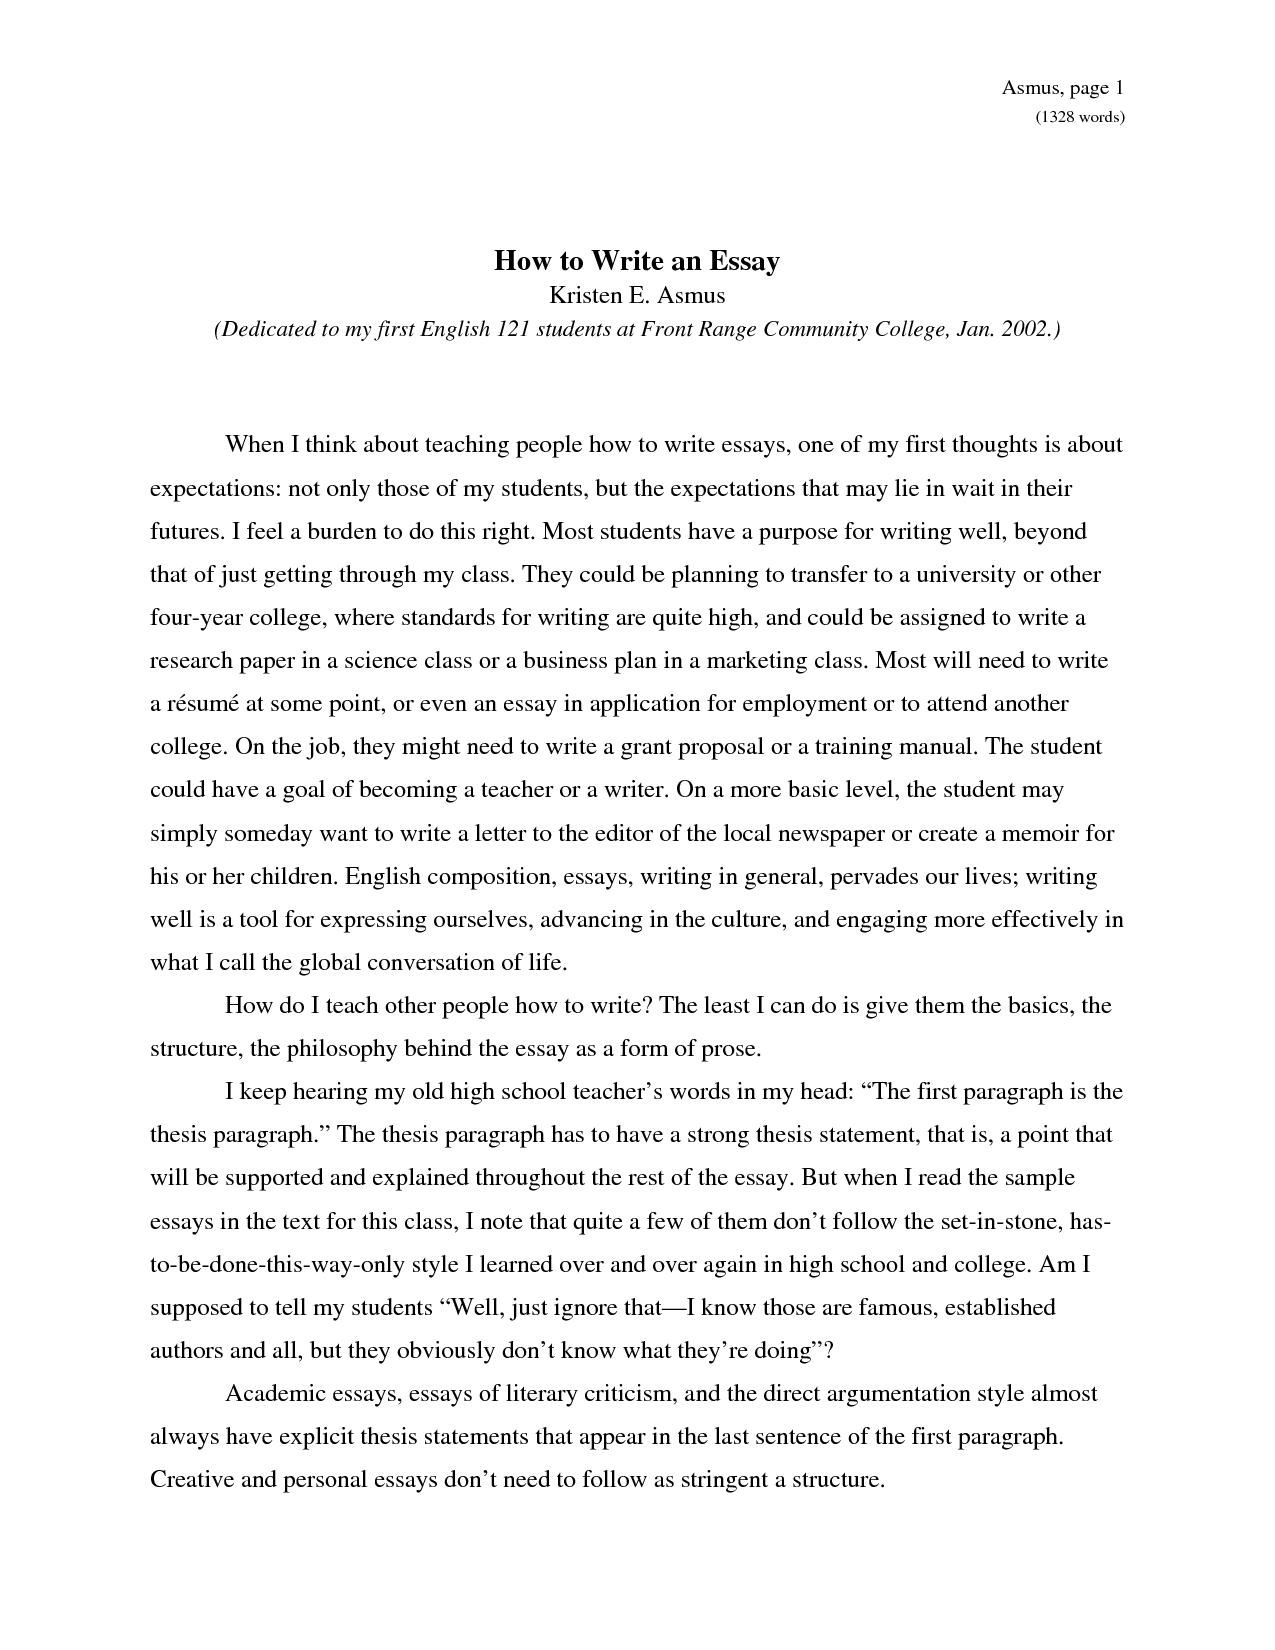 013 Essay Example How To Write An Obfuscata Sample Of L Shocking About Myself For A Scholarship Excellent Conclusion Pdf Full